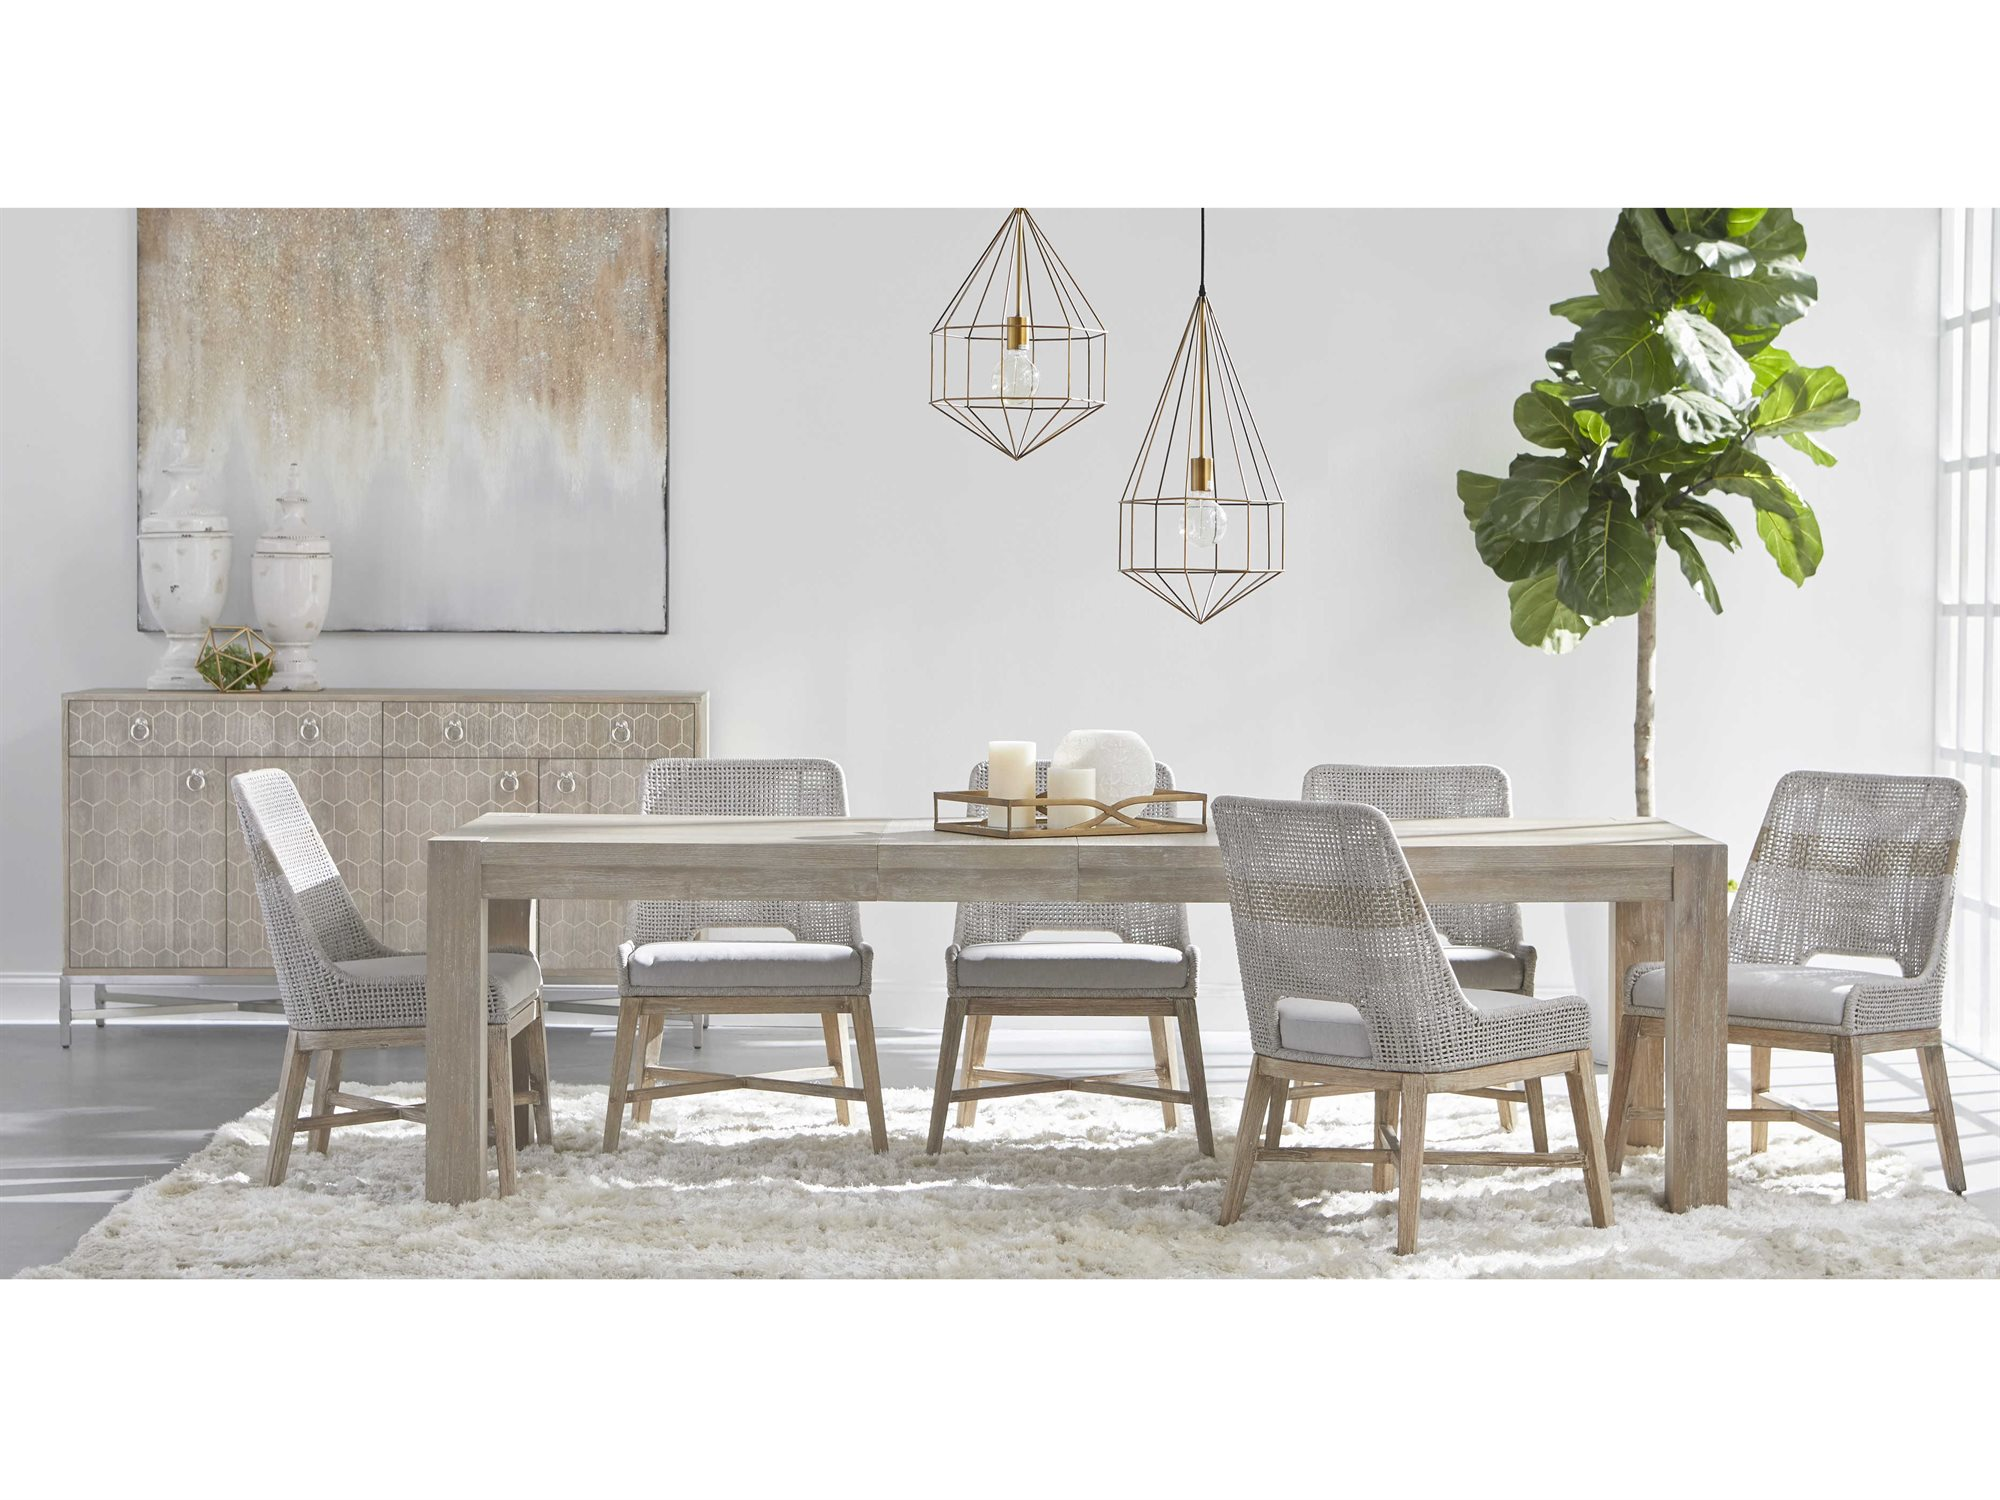 Essentials For Living Traditions Casual, Casual Dining Room Sets